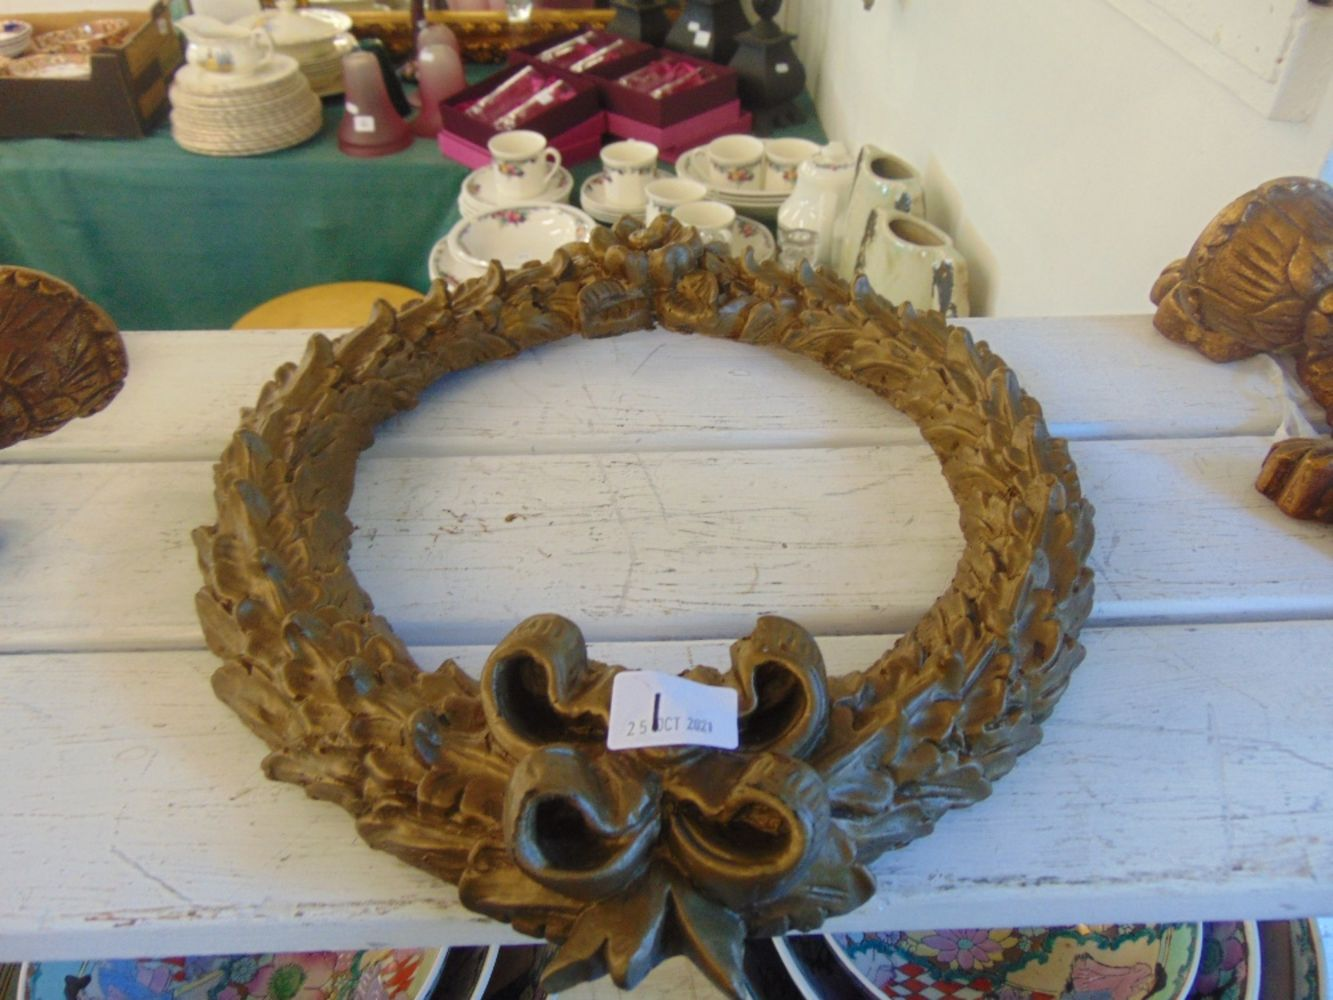 Weekly Online Auction - NL Auction Rooms